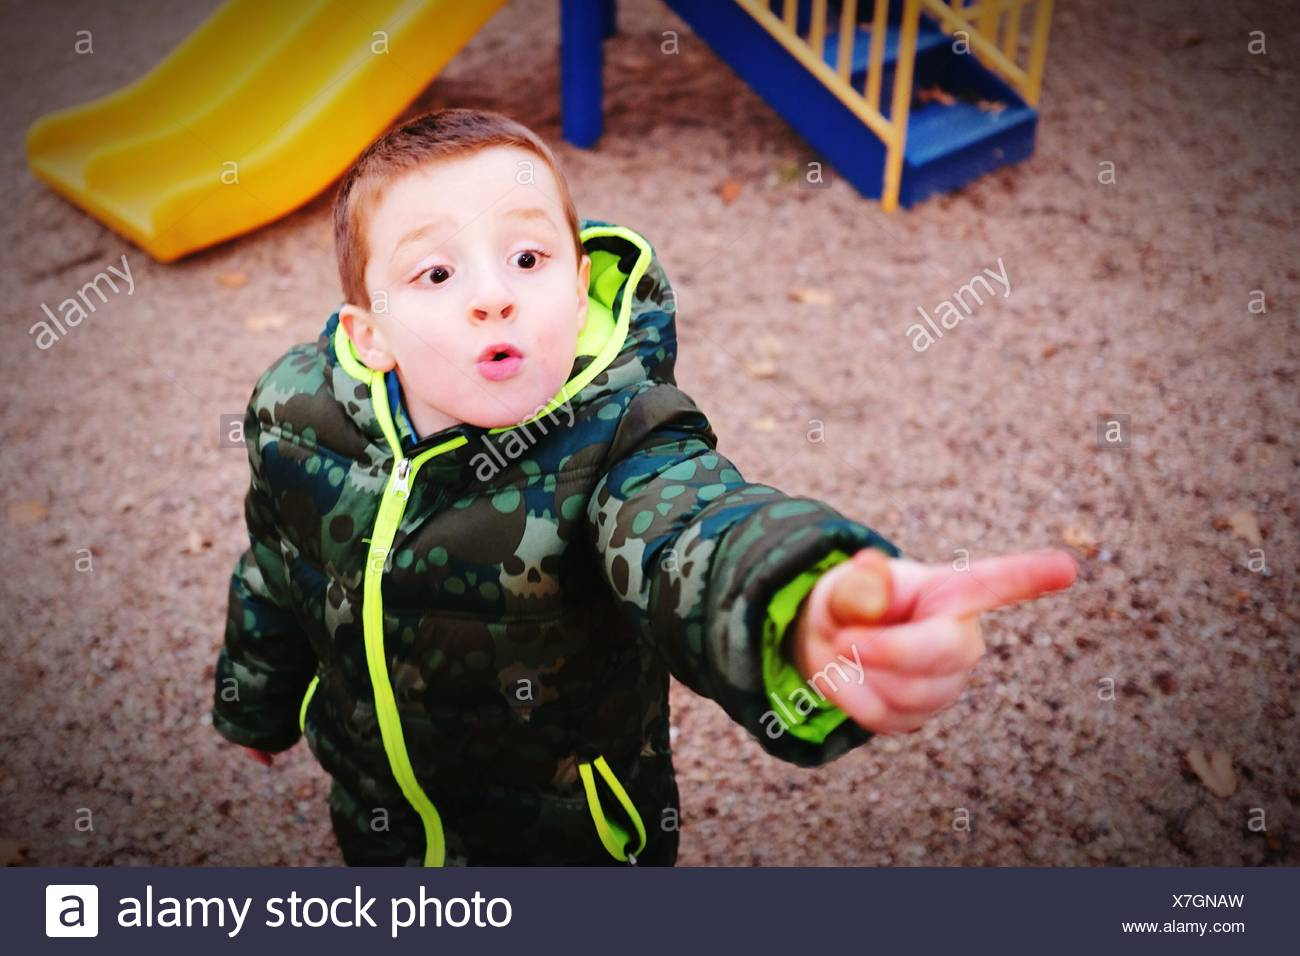 High Angle View Of Boy Pointing Towards Something At Playground - Stock Image